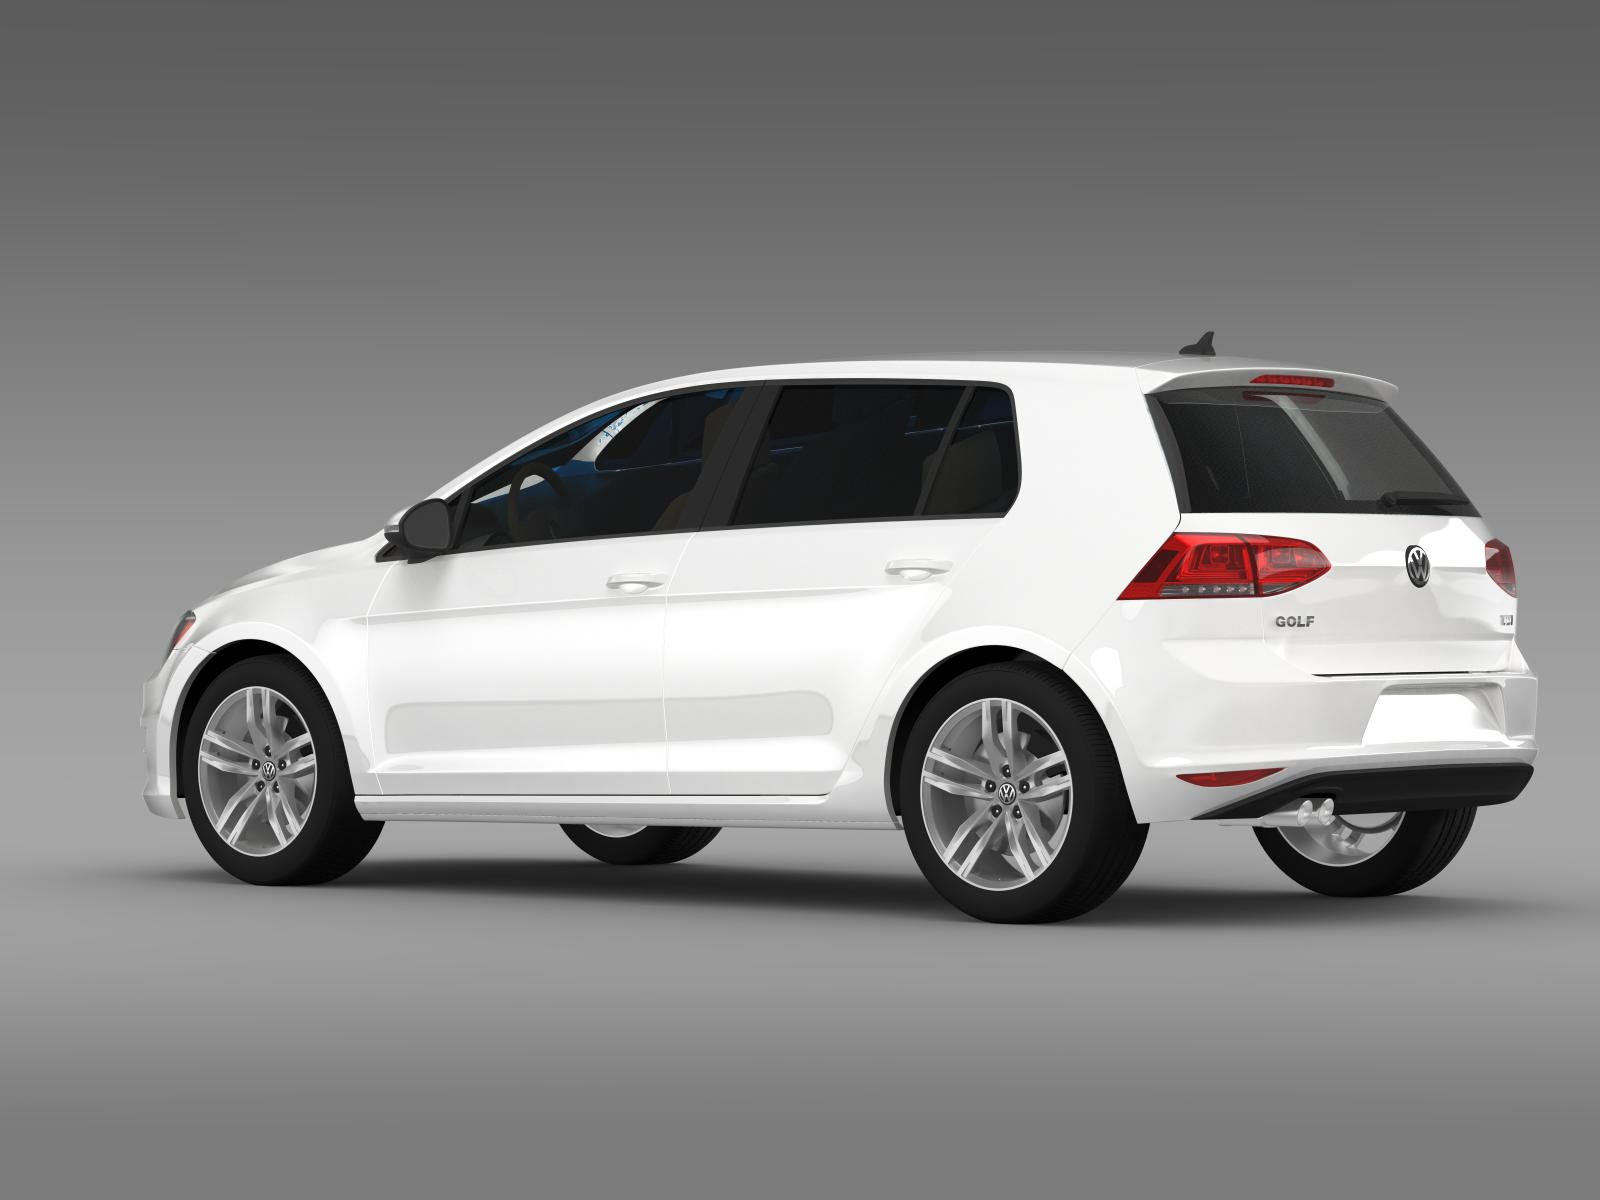 volkswagen golf tdi 5d 2015 3d model. Black Bedroom Furniture Sets. Home Design Ideas